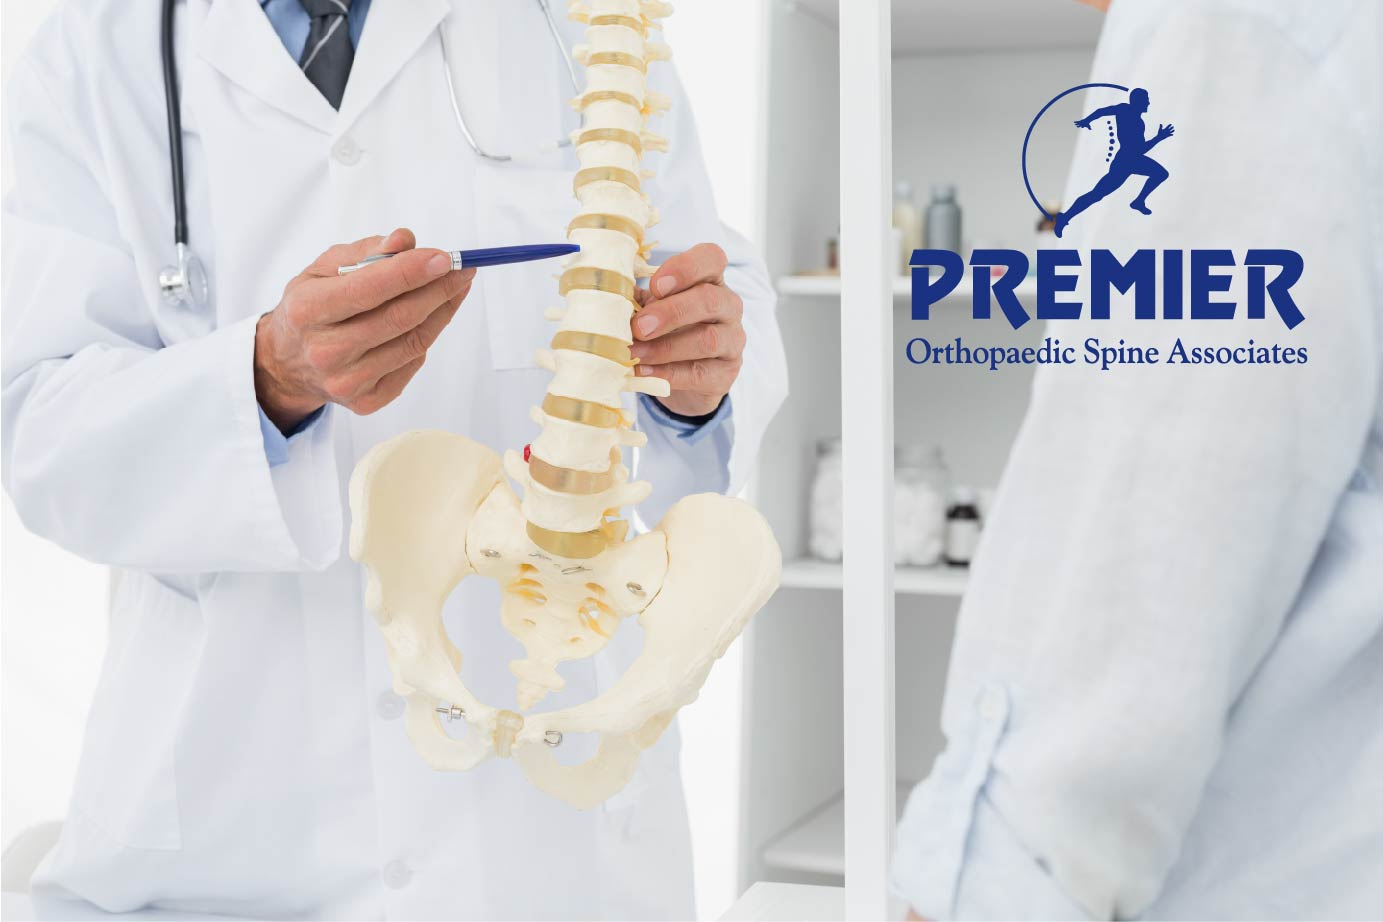 Premier Orthopaedic Spine Associates